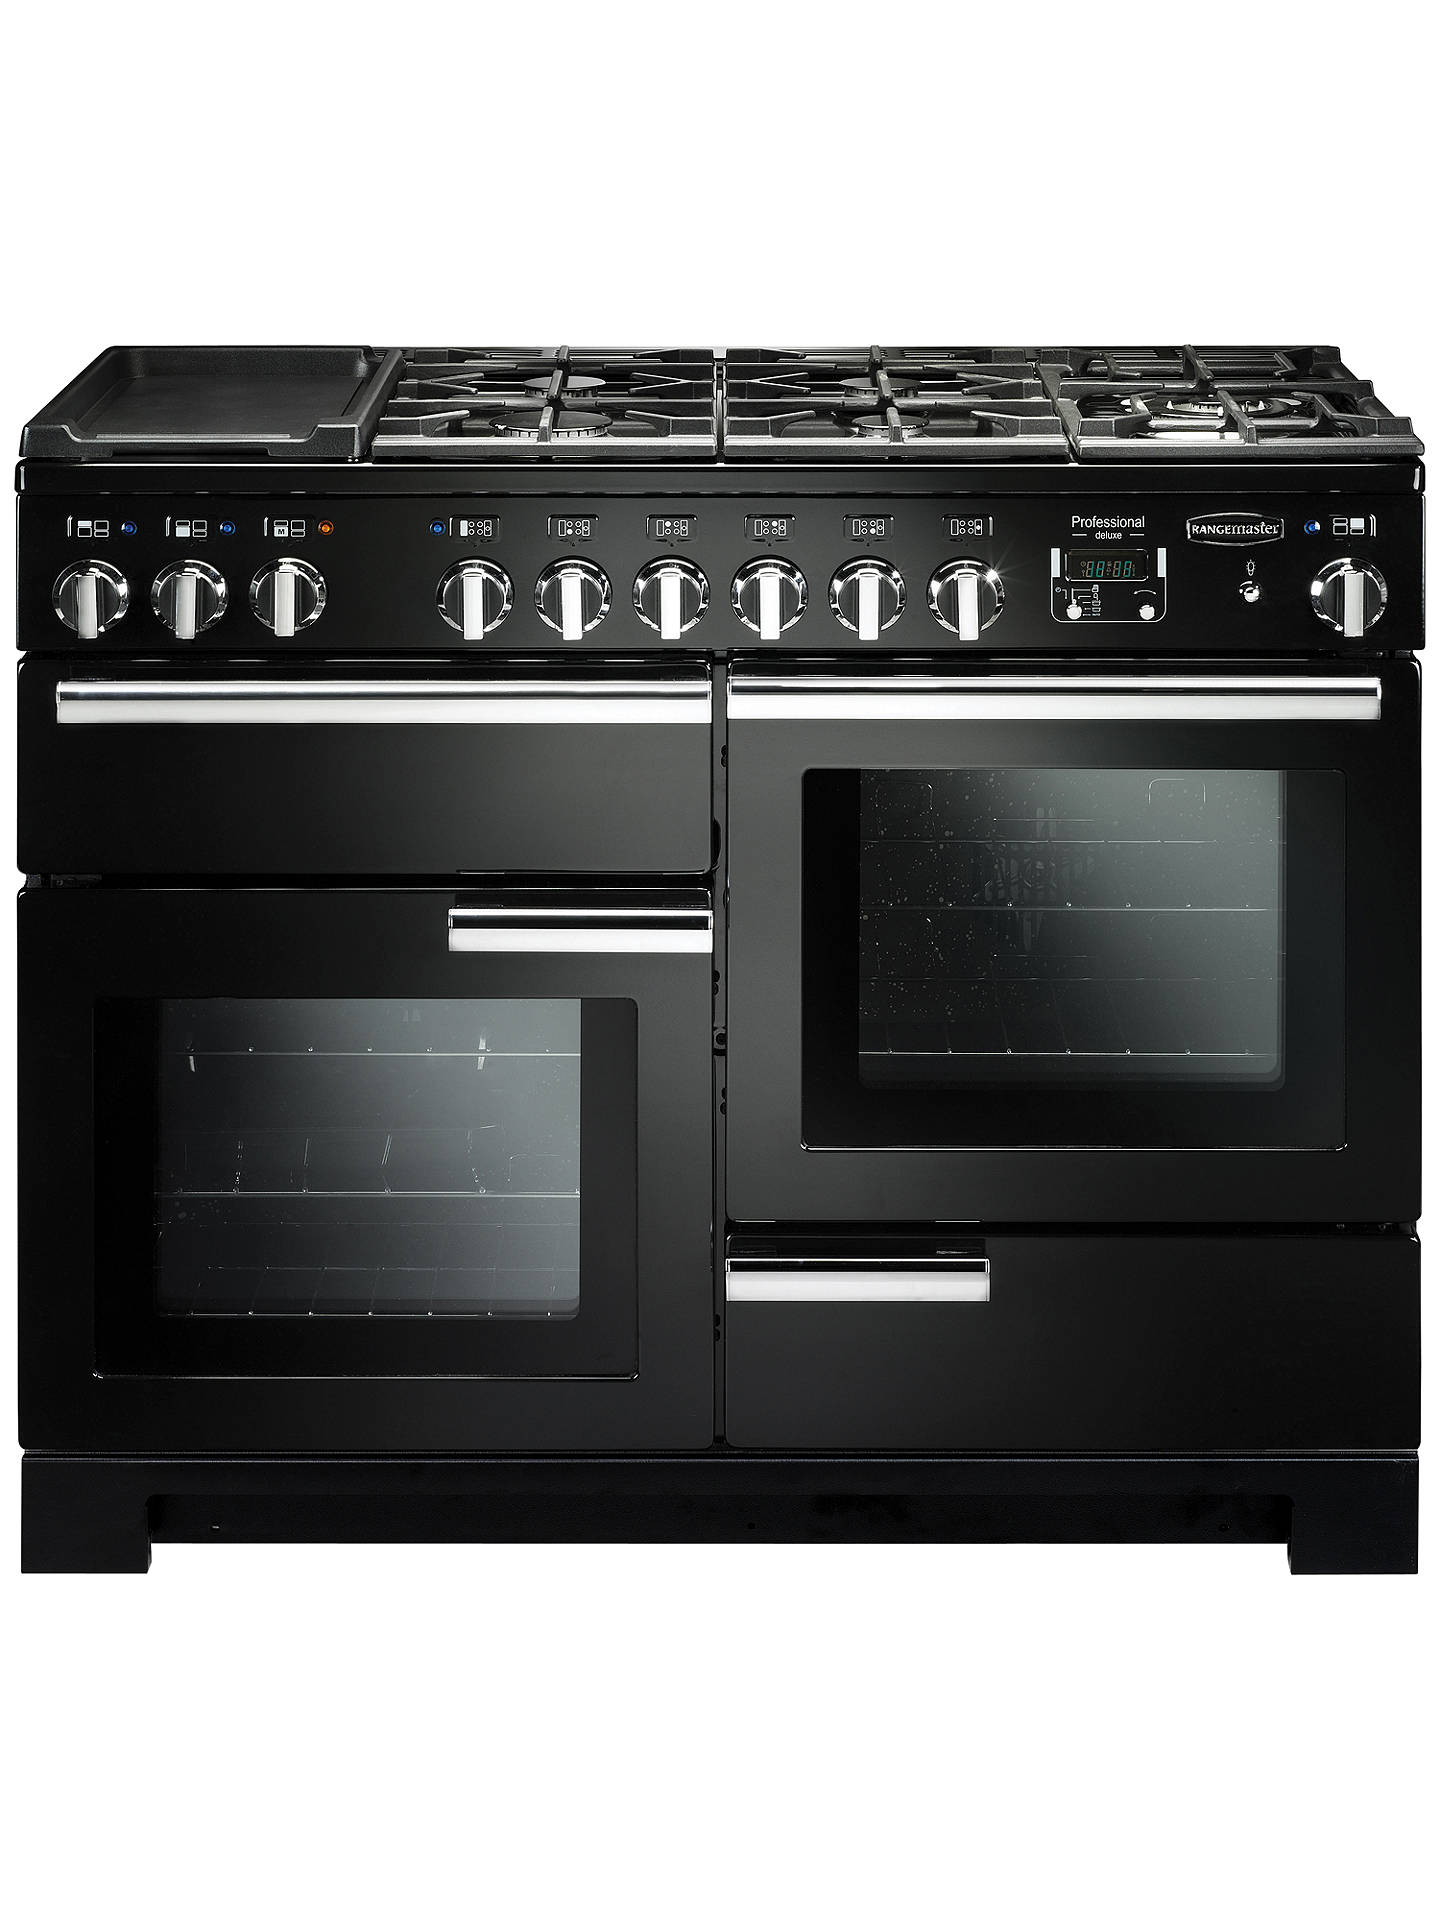 BuyRangemaster Professional Deluxe 110 Dual Fuel Range Cooker, Black/Chrome Trim Online at johnlewis.com